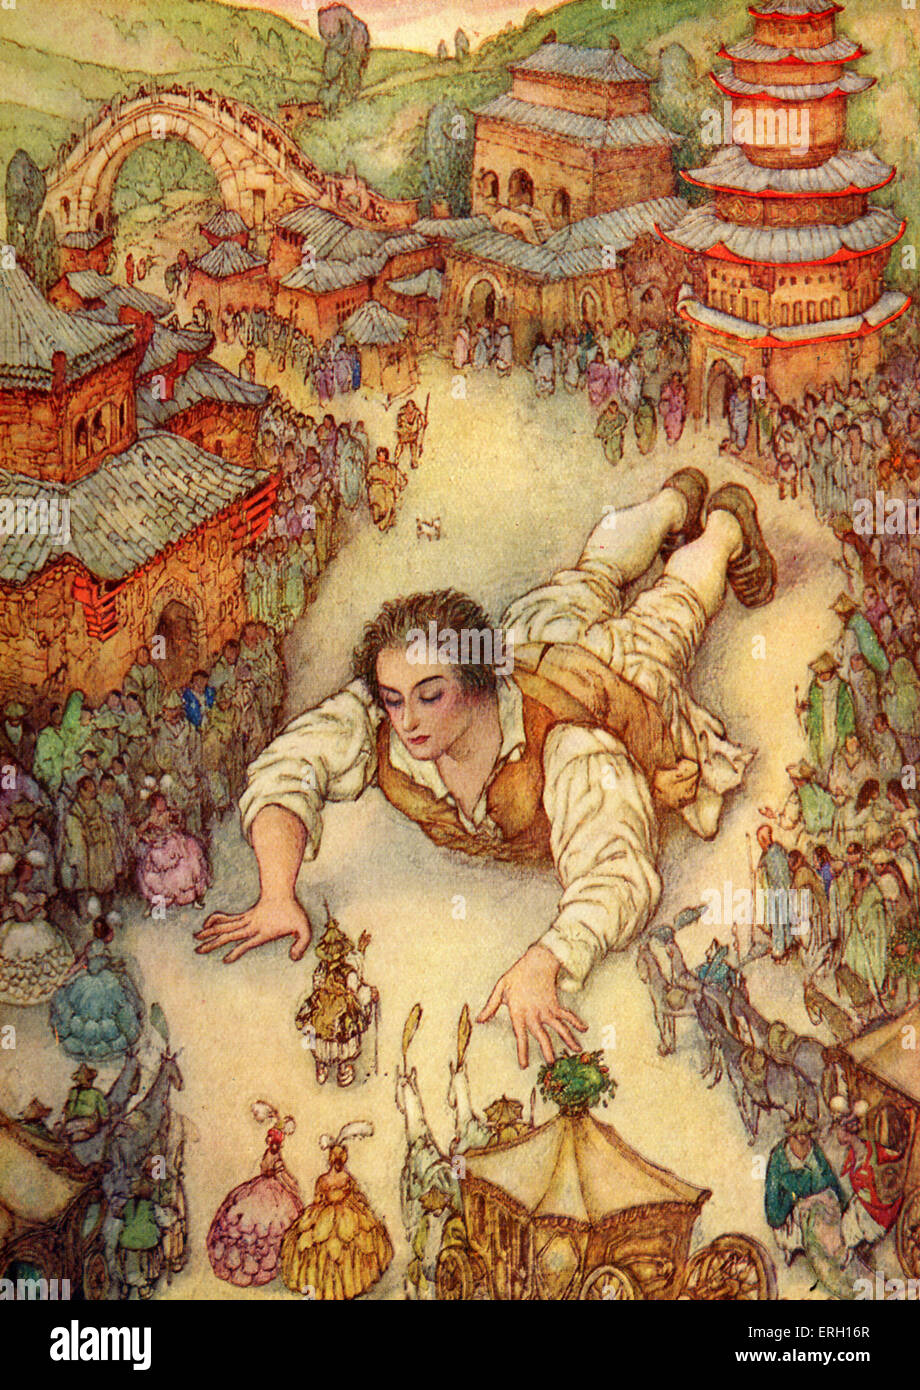 Gulliver S Travels A Voyage To Lilliput By Jonathan